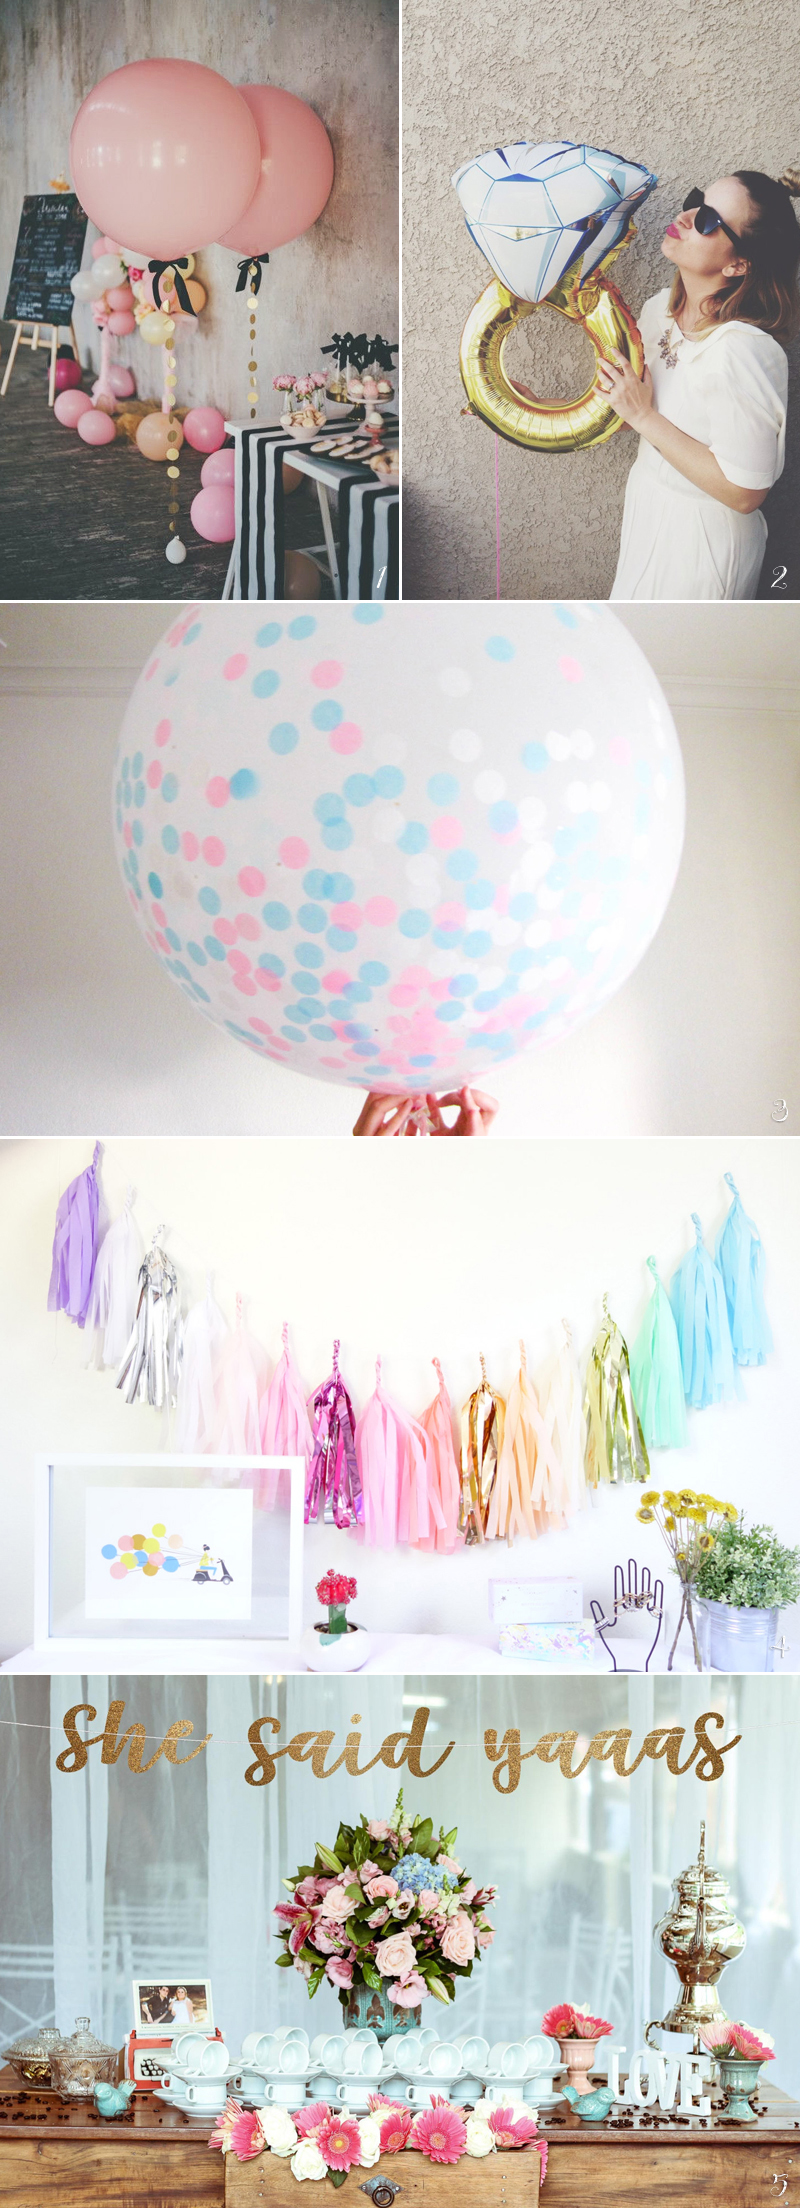 30 Creative Things You Need to Throw an Awesome Bridal